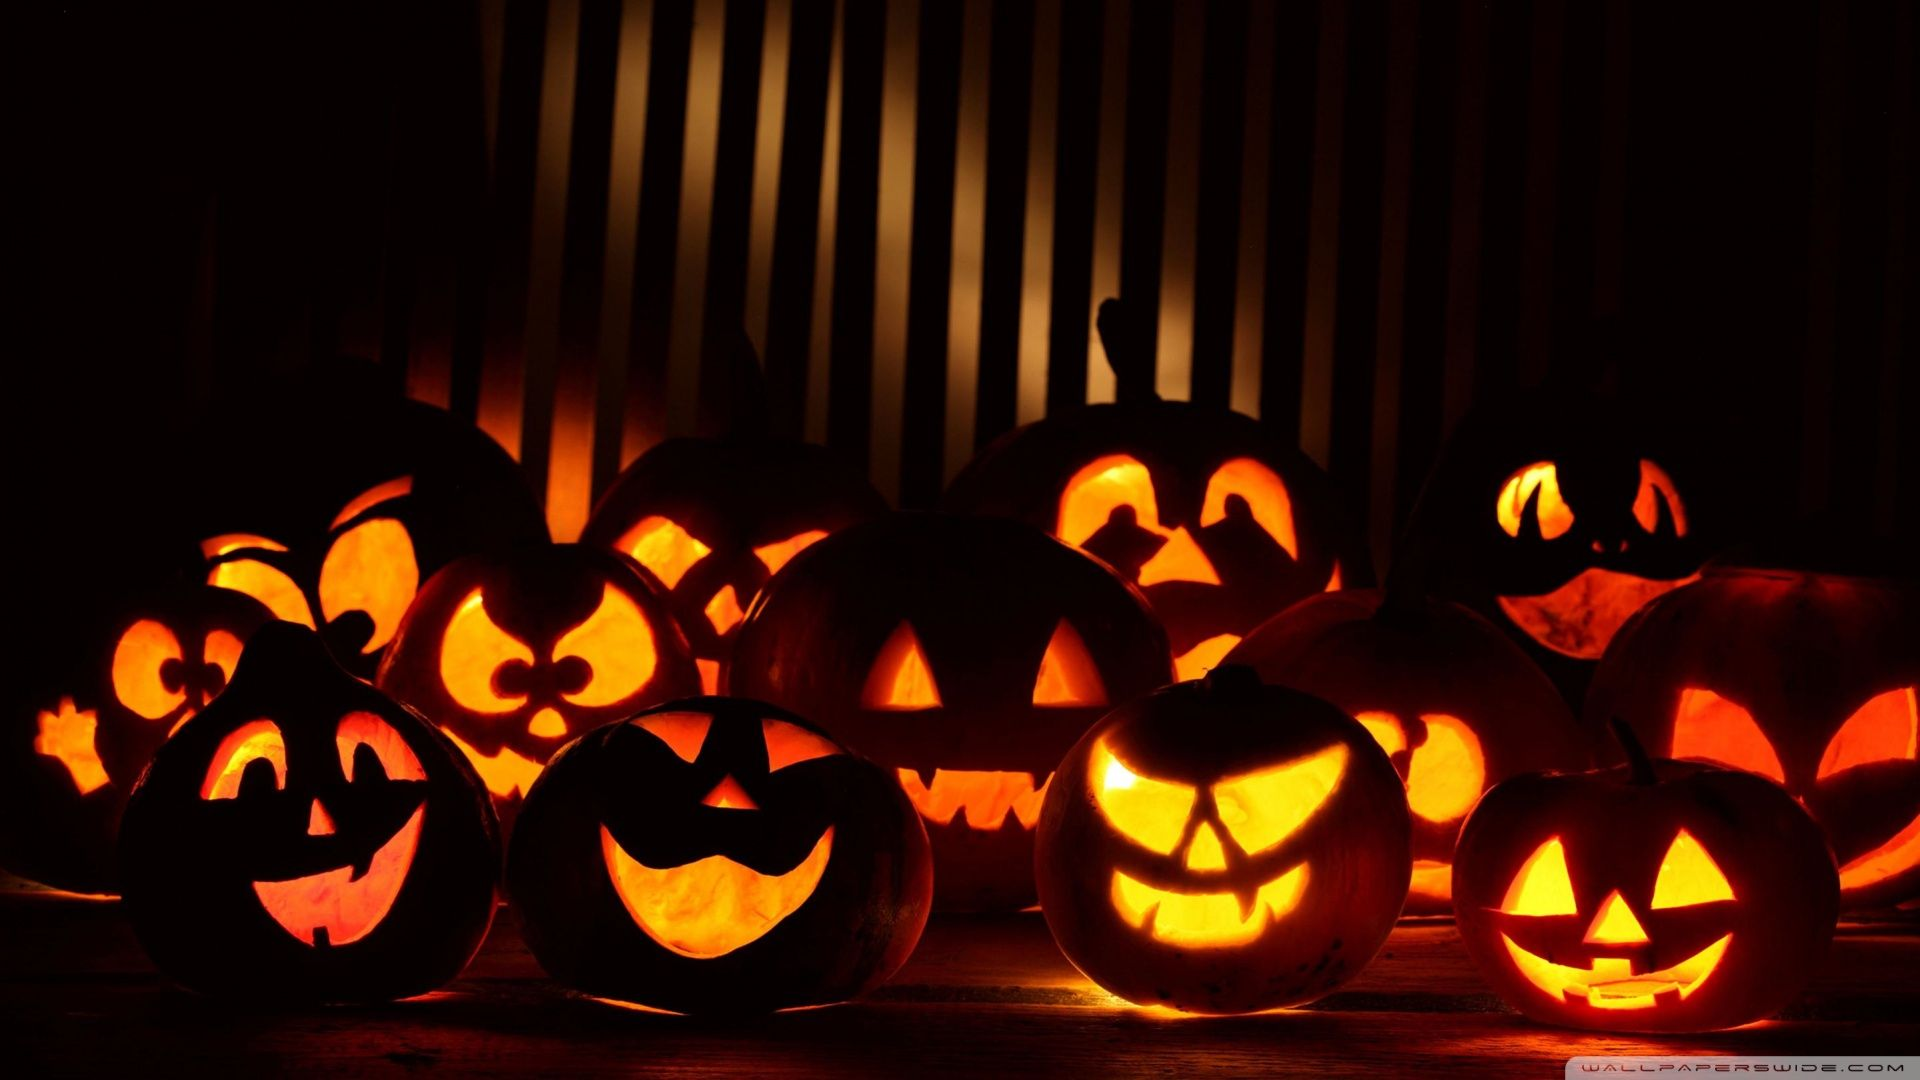 Halloween Halloween Wallpaper Halloween Images Halloween Facebook Cover